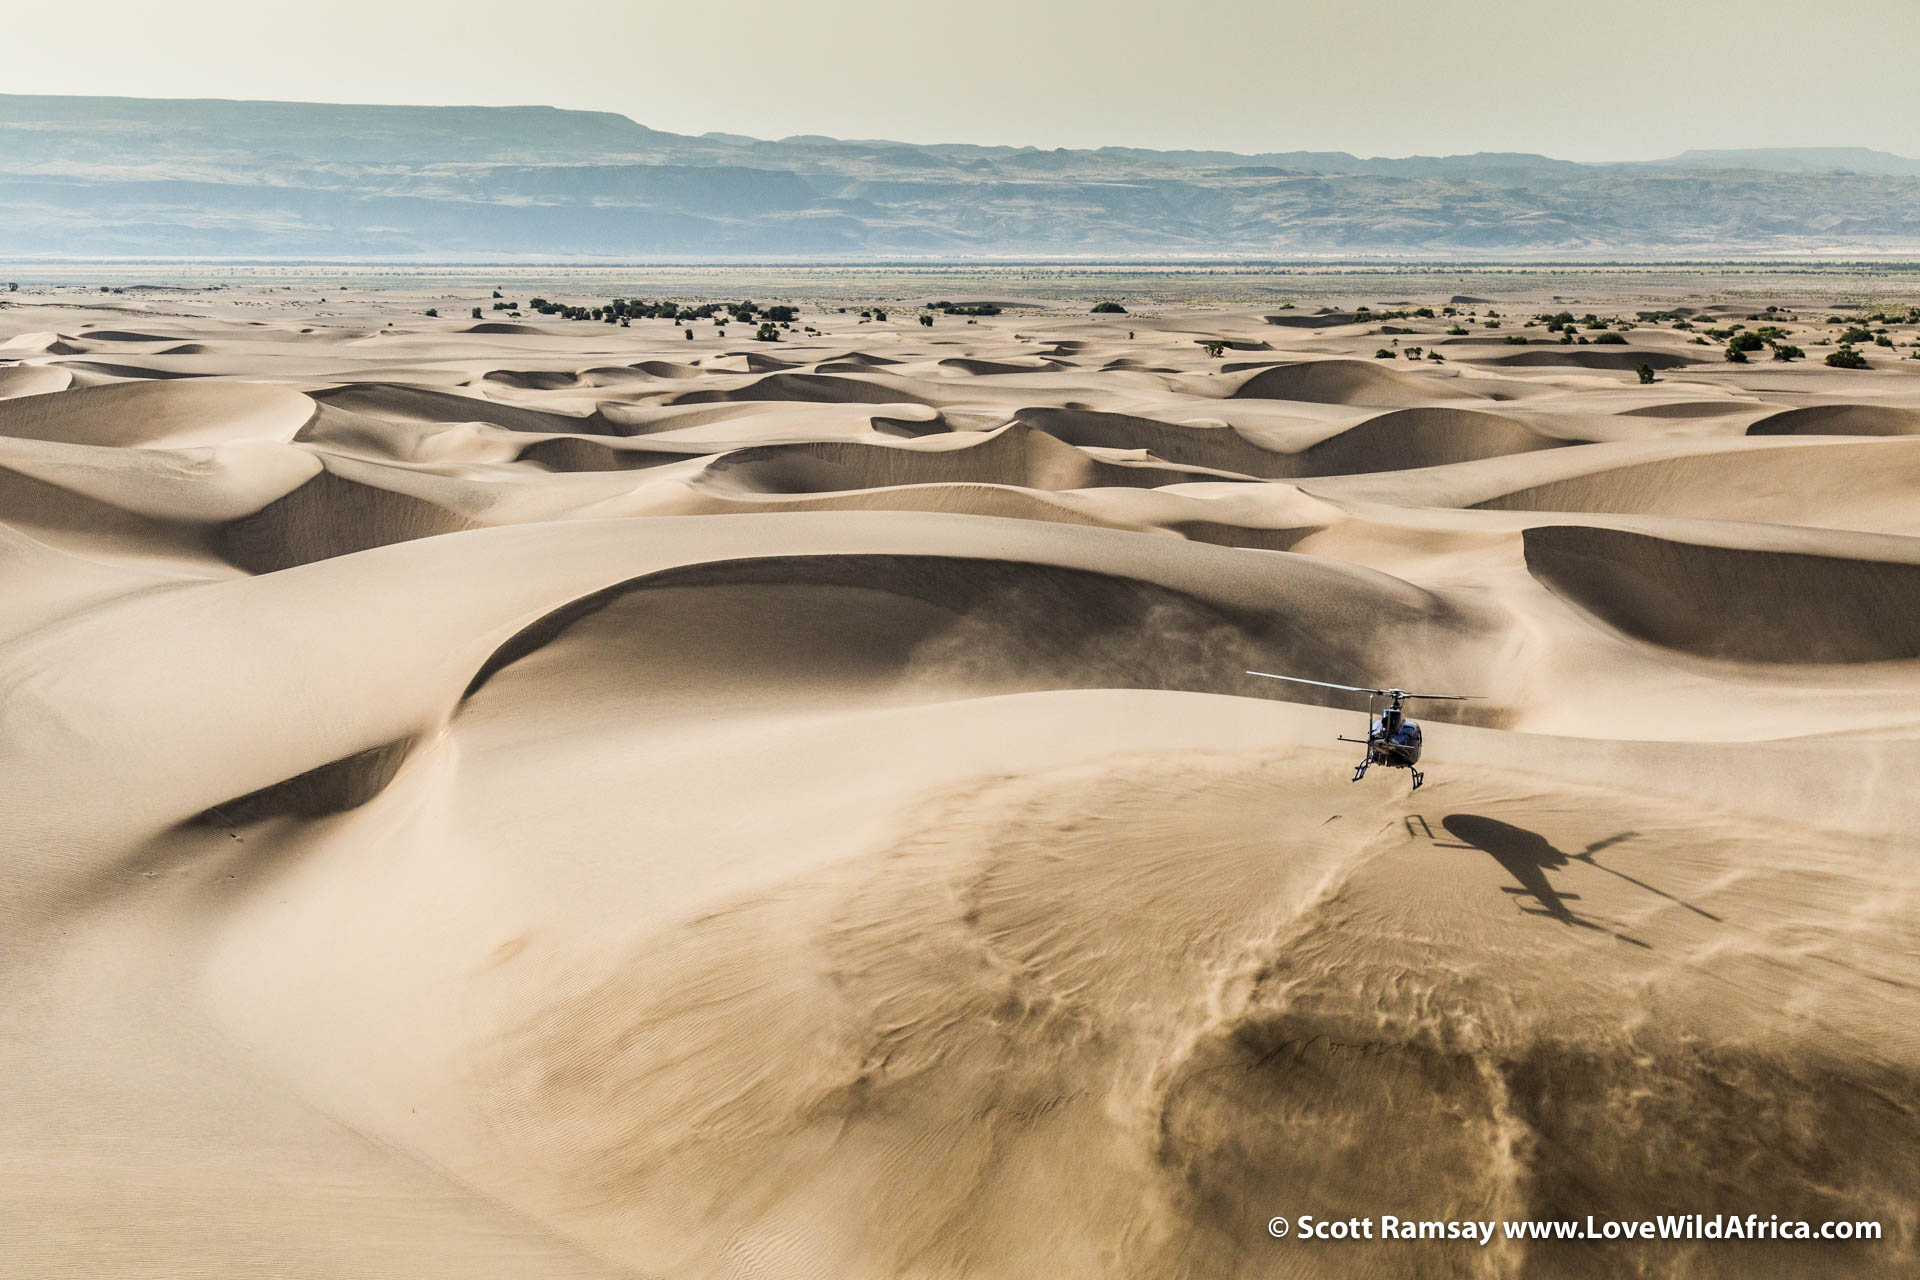 Sarah Snell of Tropic Air lands the Eurocopter on a sand dune, while we watch them from our little Robinson R44.